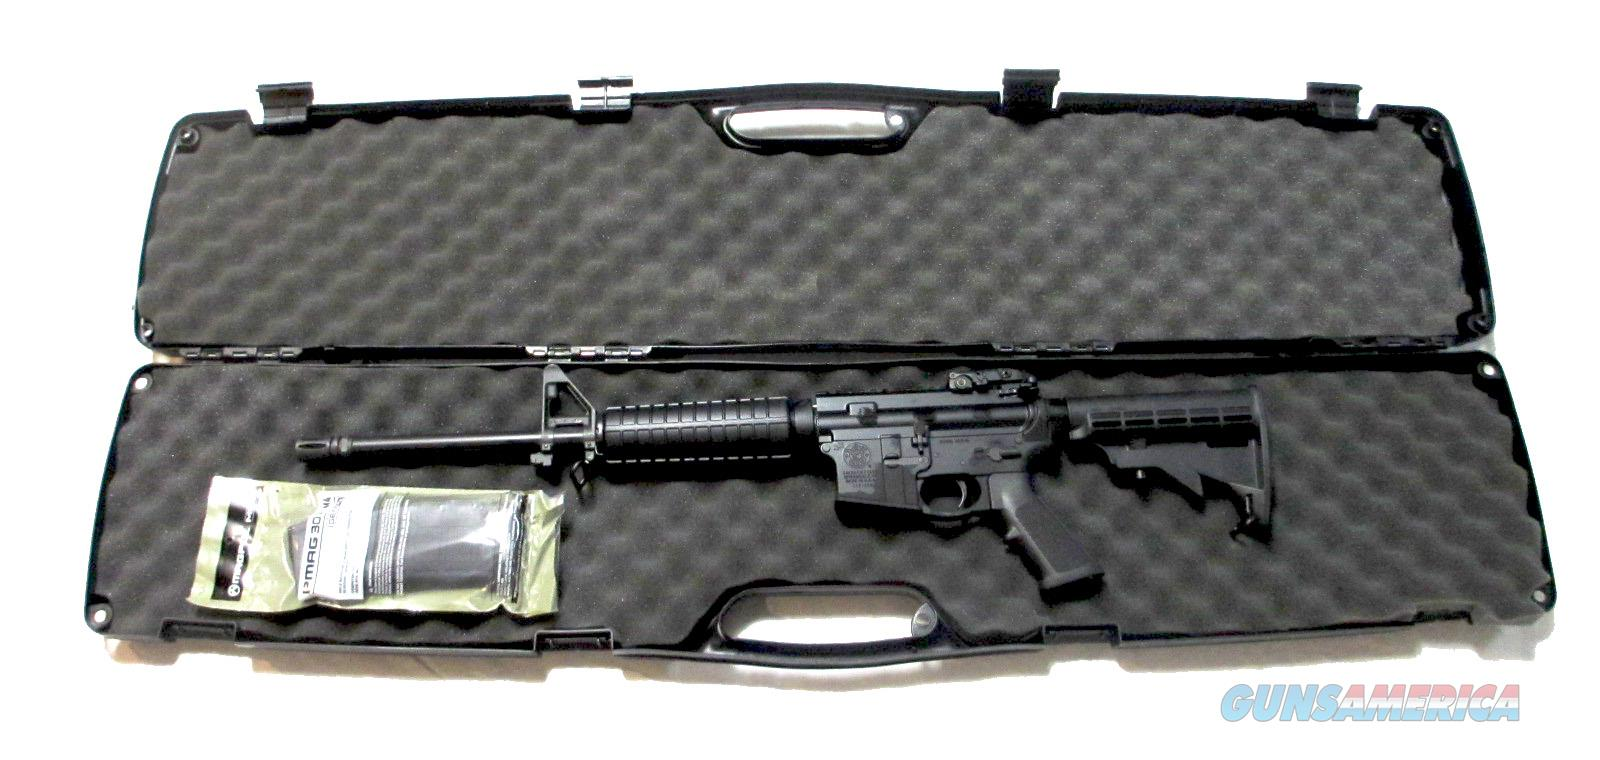 S&W Smith and Wesson M&P15 5.56 .223 + Cadwell Magcharger Magpul NIB Model 10276  Guns > Rifles > Smith & Wesson Rifles > M&P